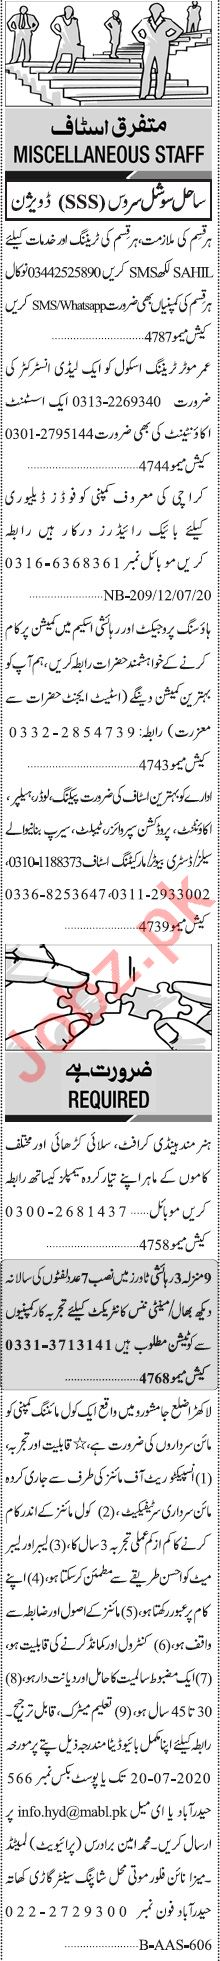 Jang Sunday Classified Ads 12th July 2020 for Multiple Staff